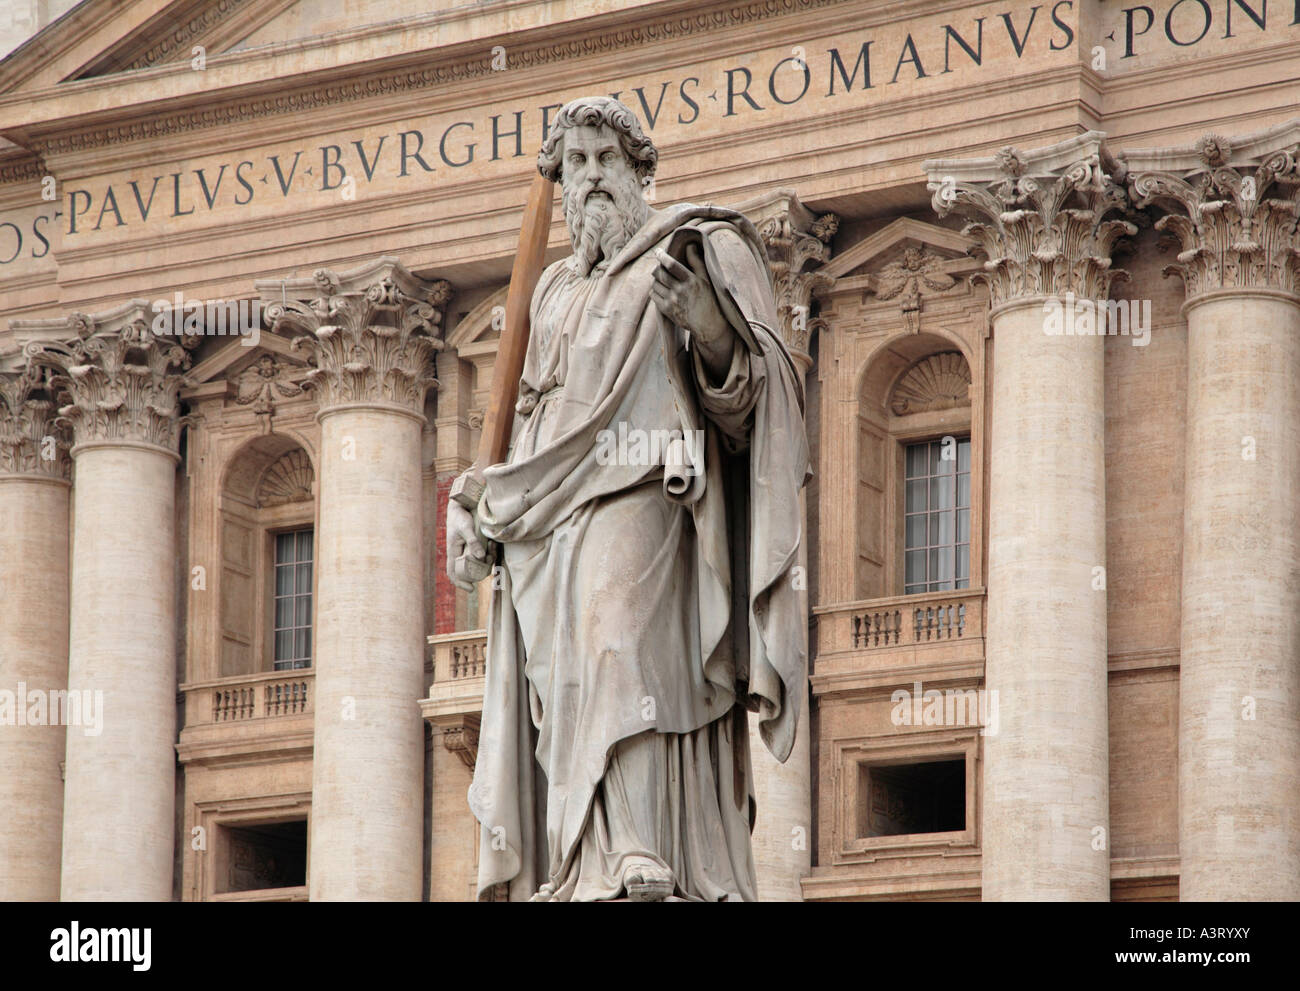 Statue of St Paul in front of Saint Peter's Basilica Vatican City Rome Italy - Stock Image